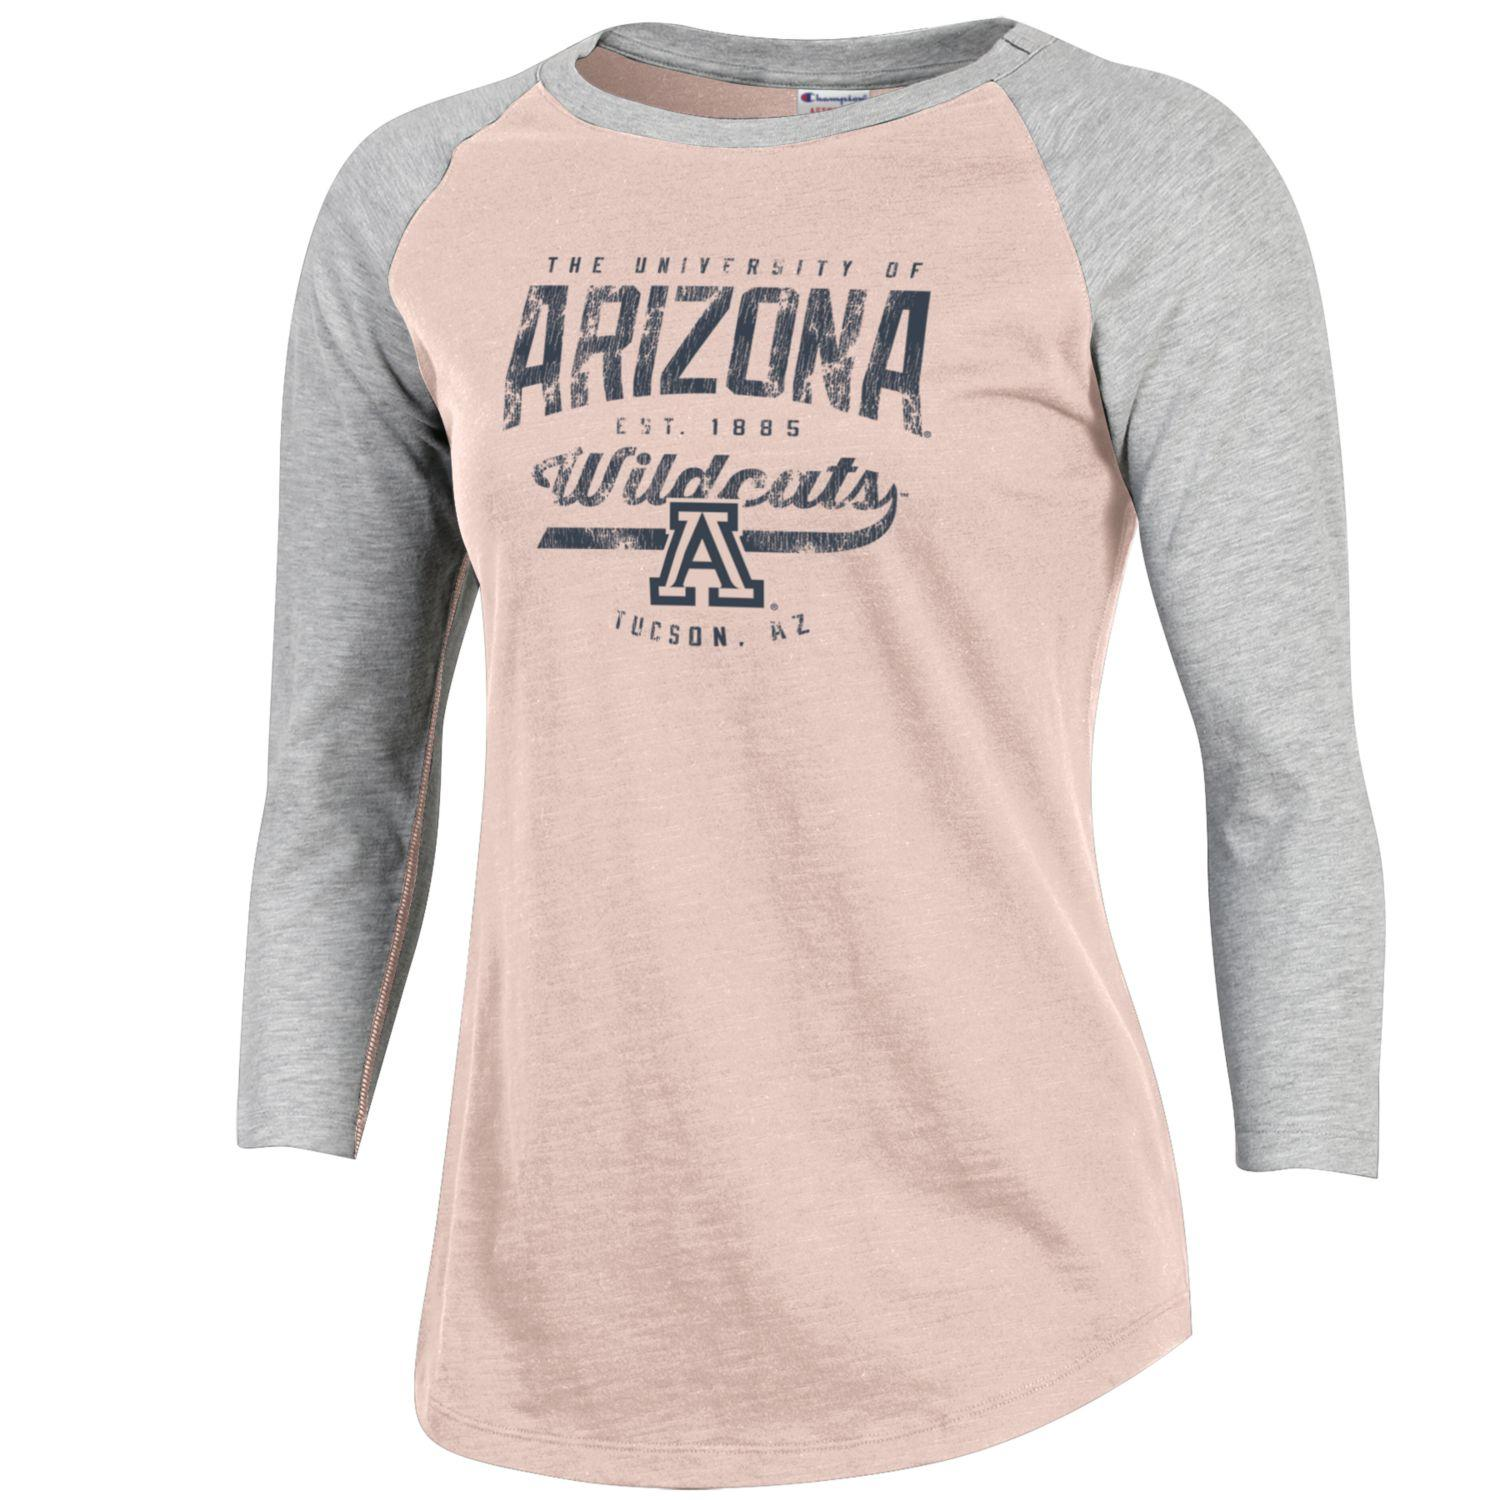 Image For Champion: Arizona EST. ROCHESTER 1919 BASEBALL TEE